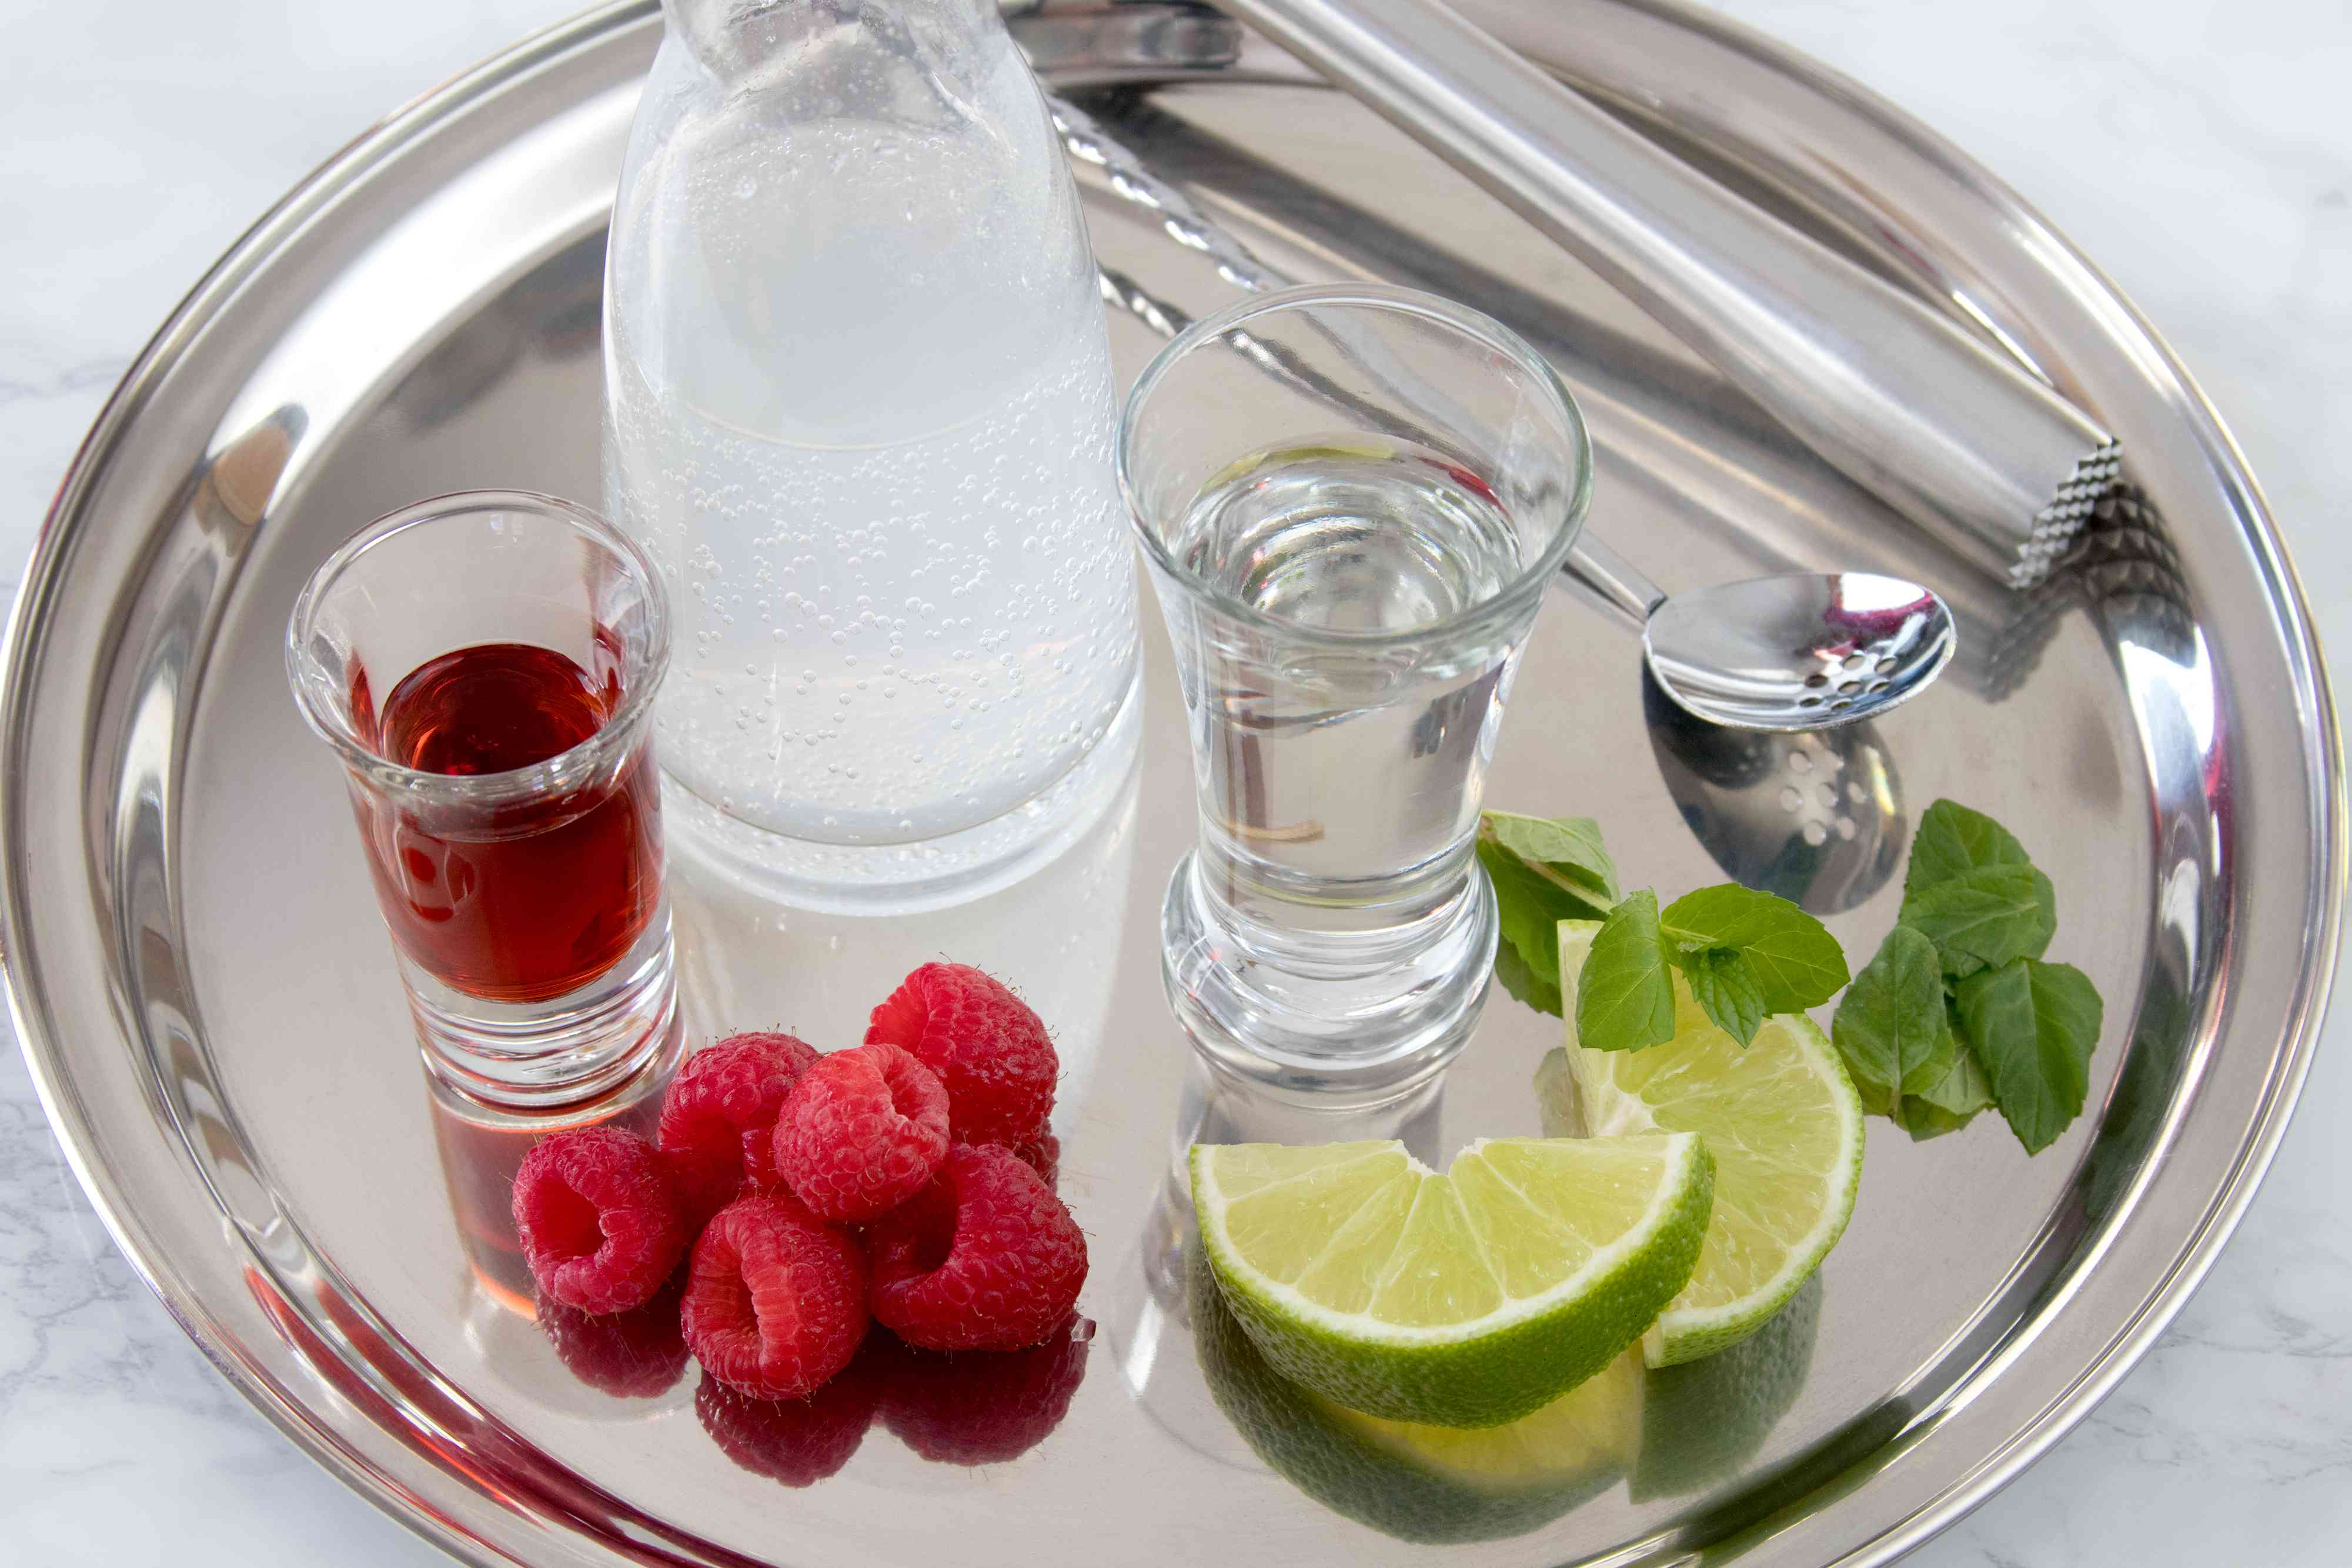 Ingredients for a Raspberry Mojito Cocktail